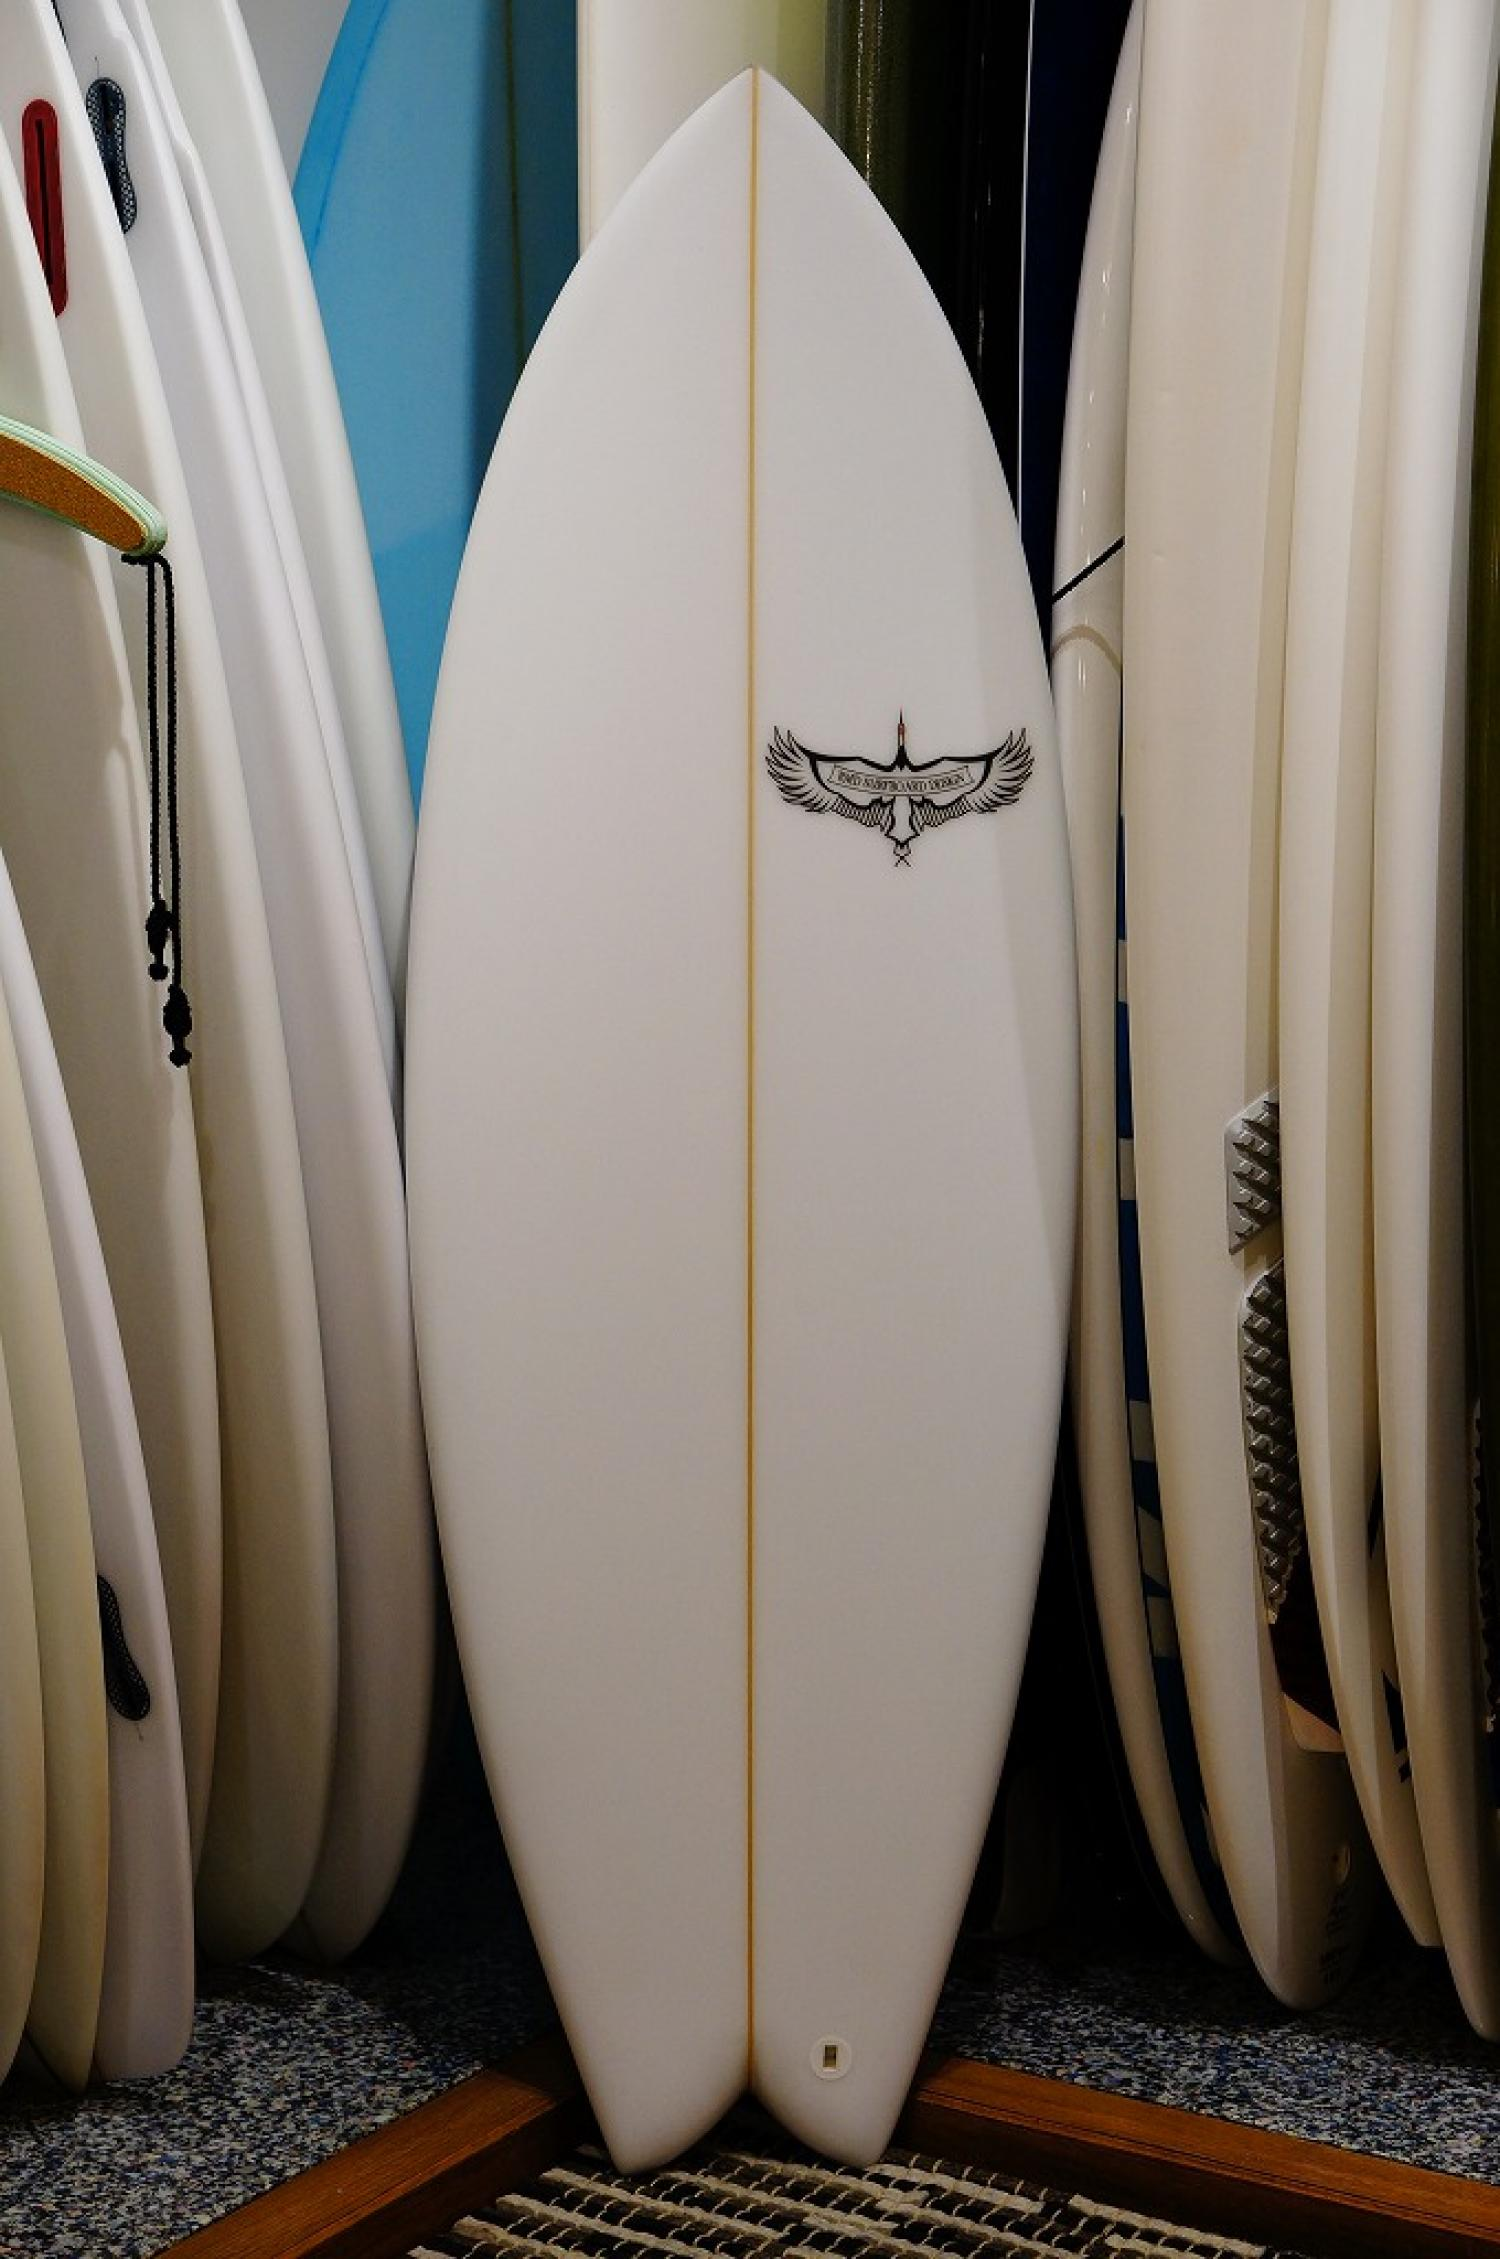 RMD SURFBOARDS 5.0 POTECHI Yes Surf team rider custom board